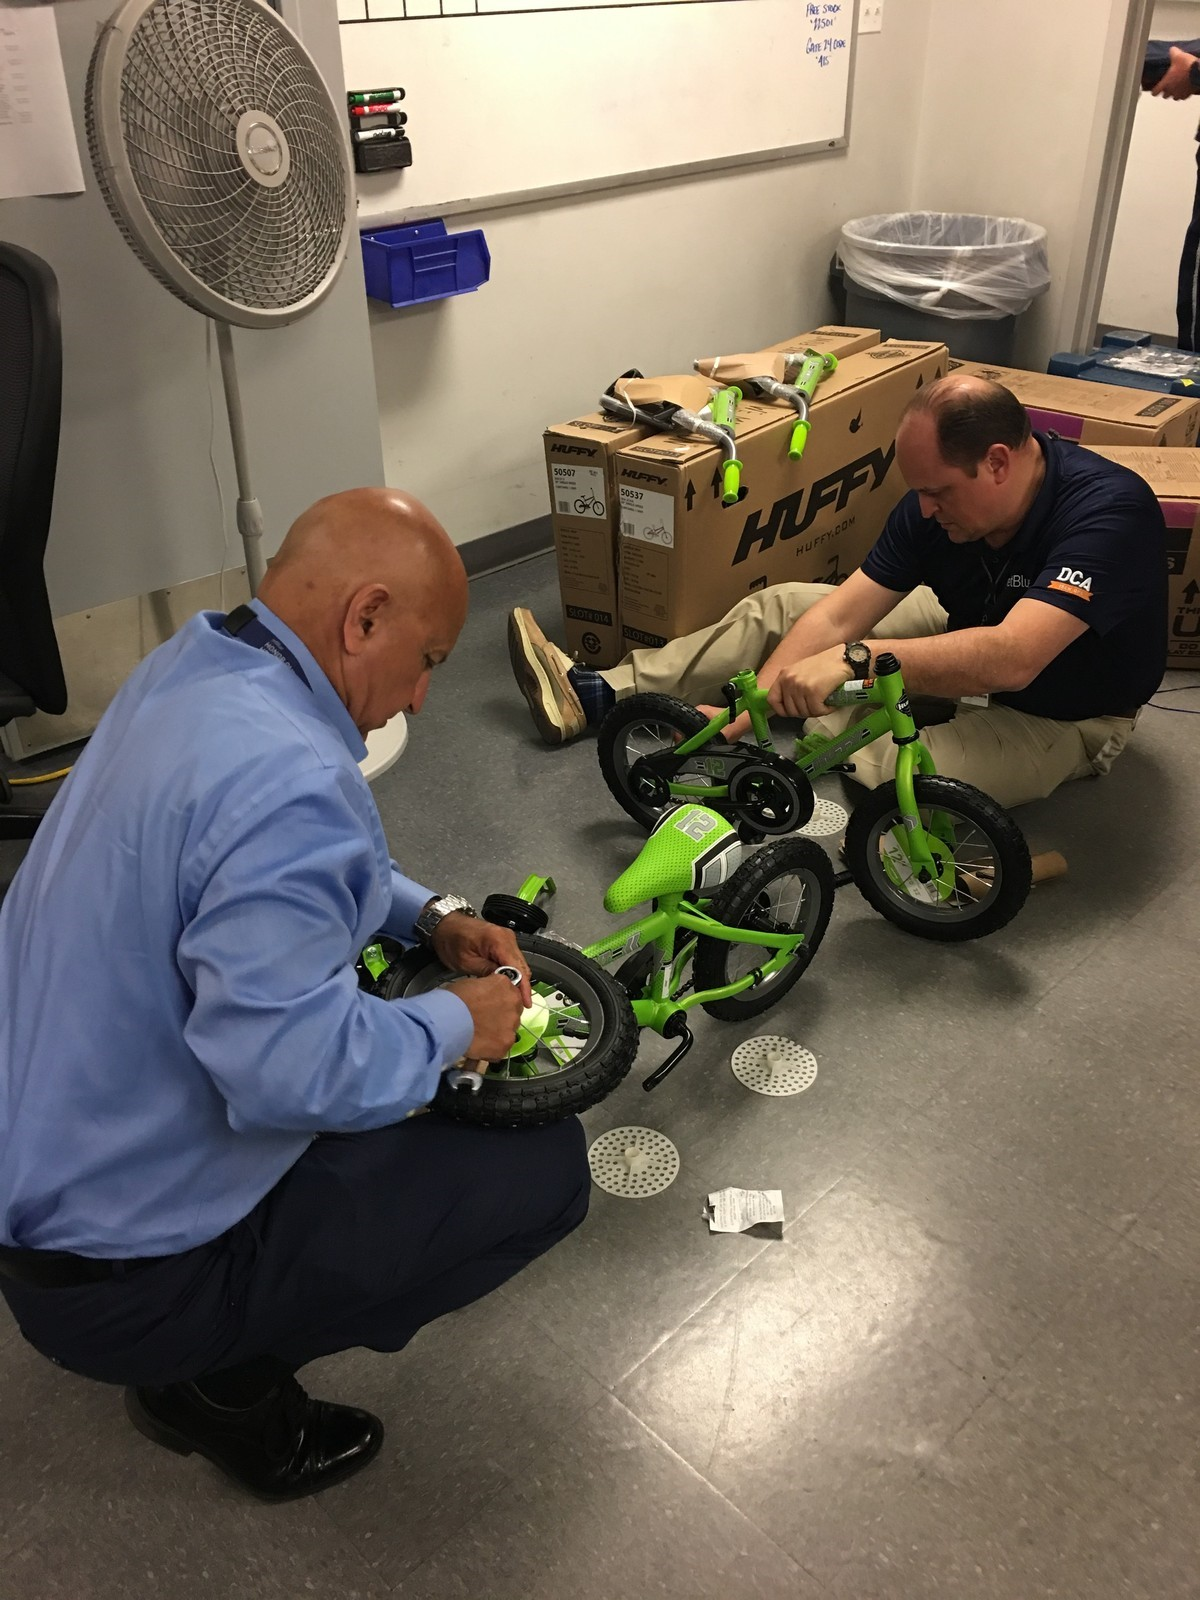 Crewmembers work on assembling a bike